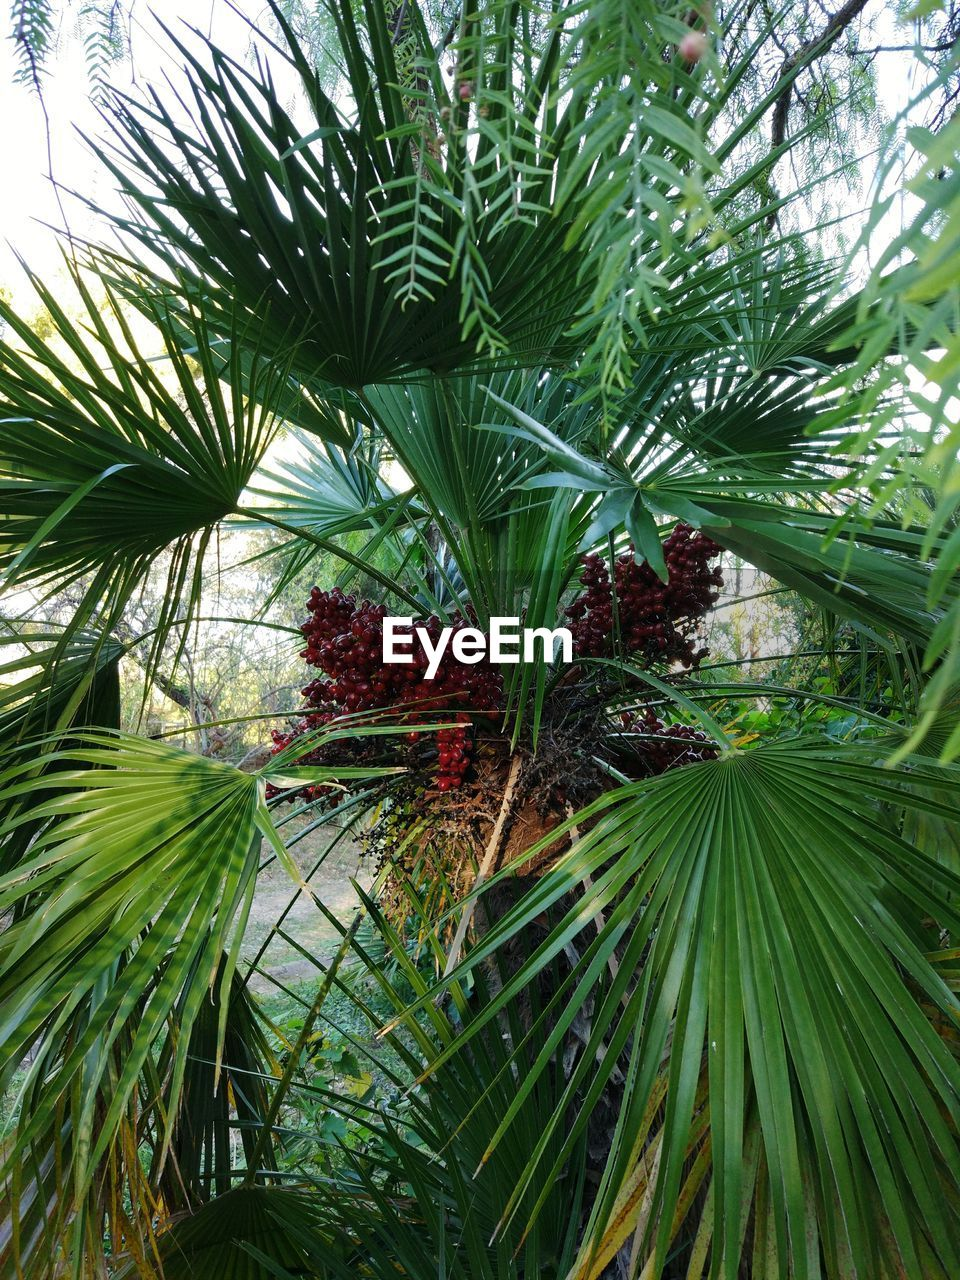 plant, growth, green color, tree, leaf, nature, plant part, day, beauty in nature, no people, tropical climate, palm tree, outdoors, freshness, fruit, tranquility, close-up, branch, palm leaf, healthy eating